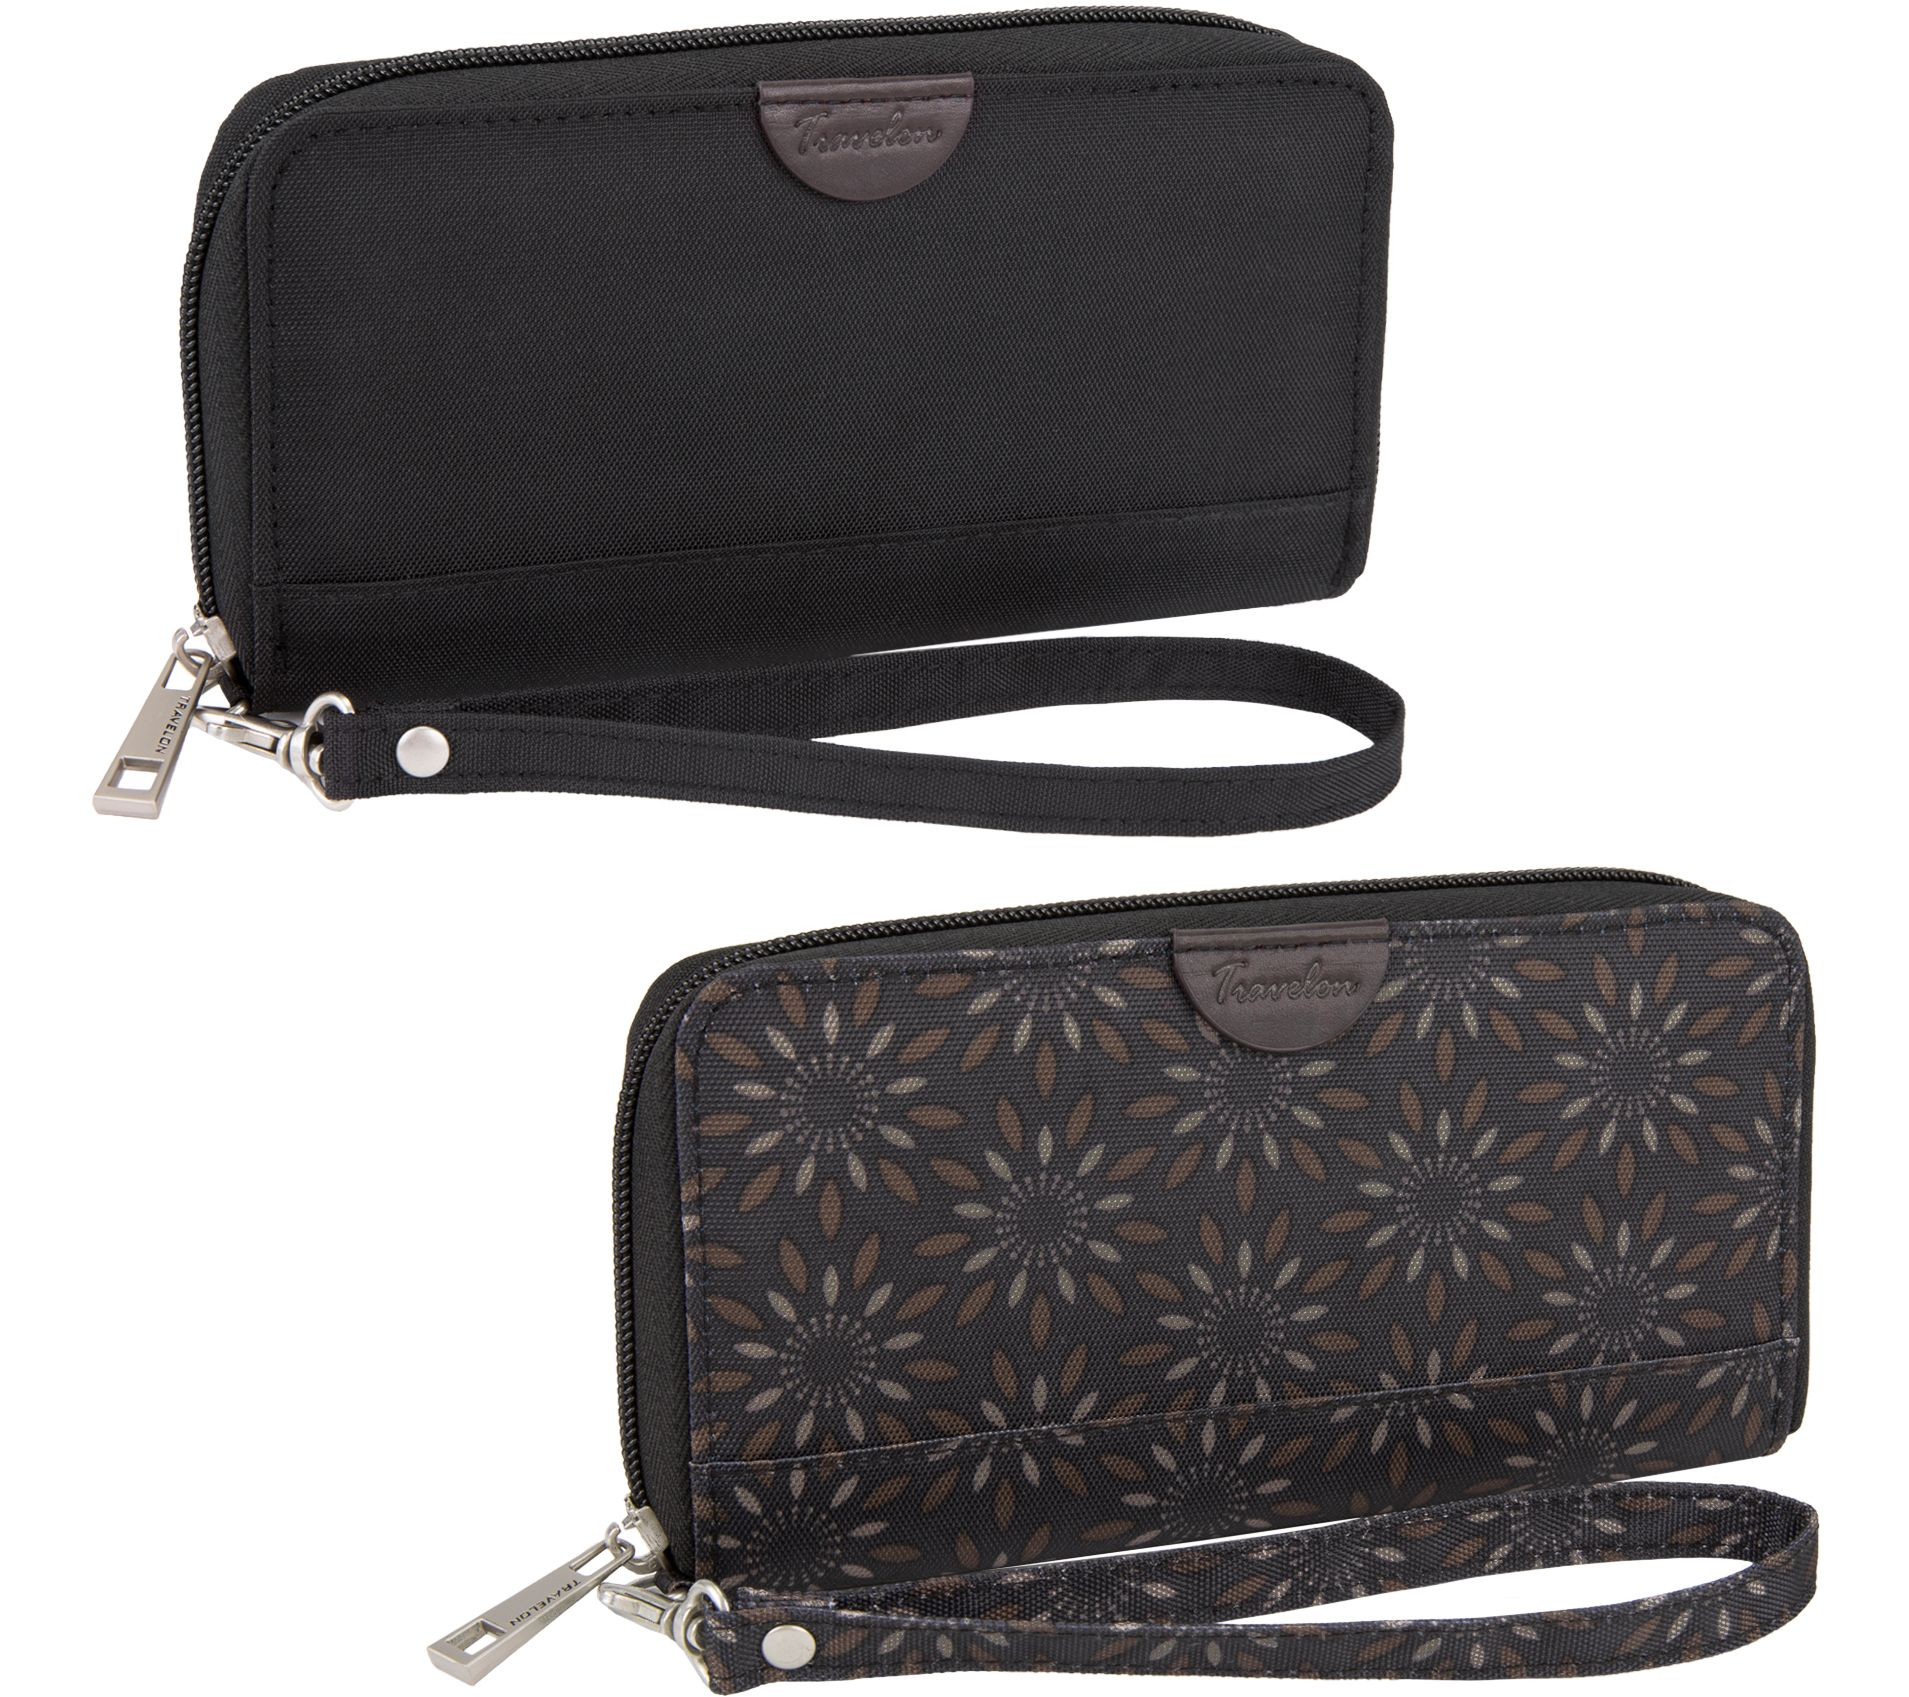 7734b692e0b2 Travelon Set of 2 RFID Wallets with Gift Boxes - Page 1 — QVC.com